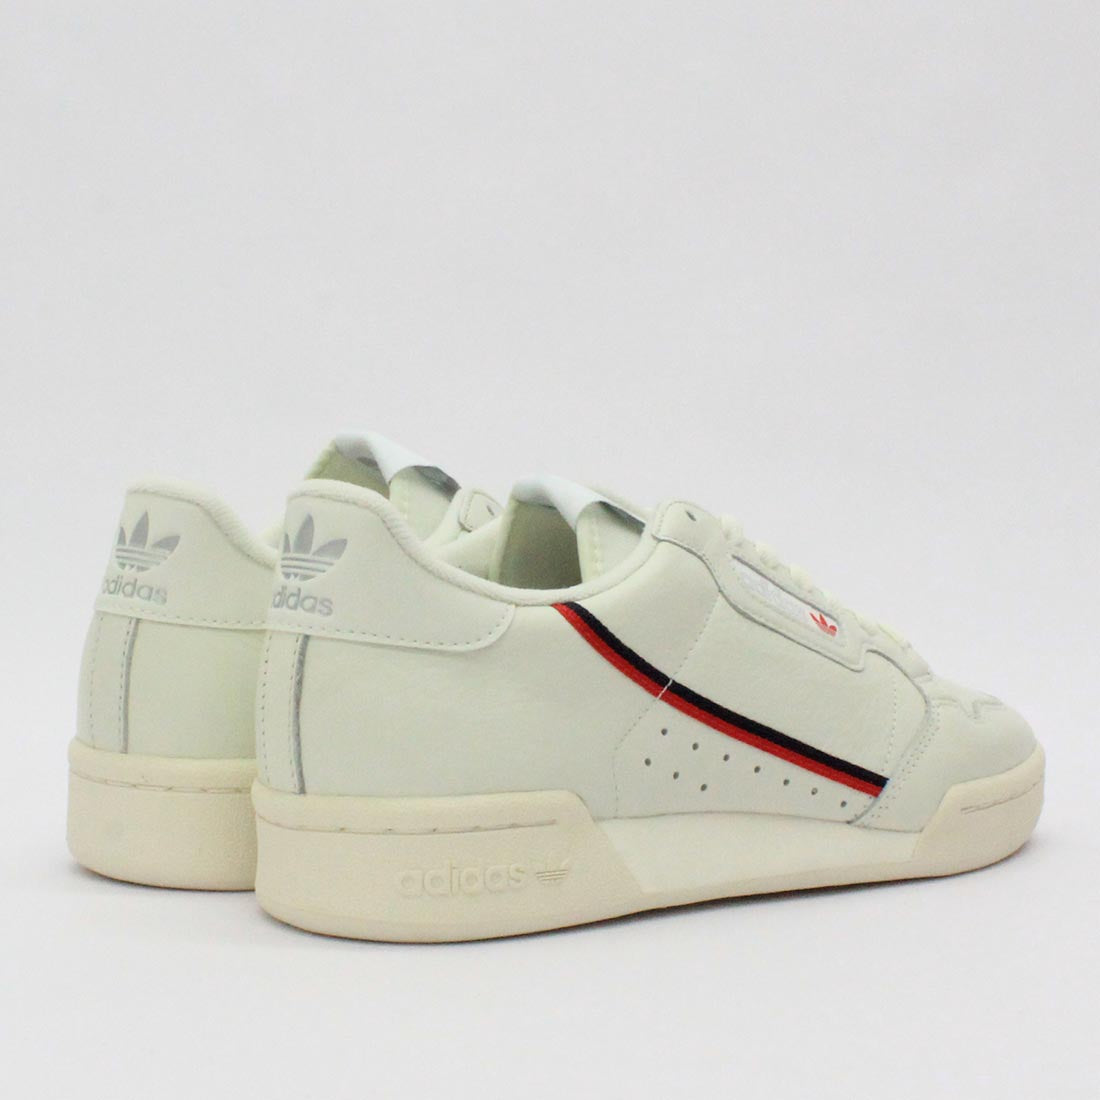 Adidas Originals continental b41680 80 blanco